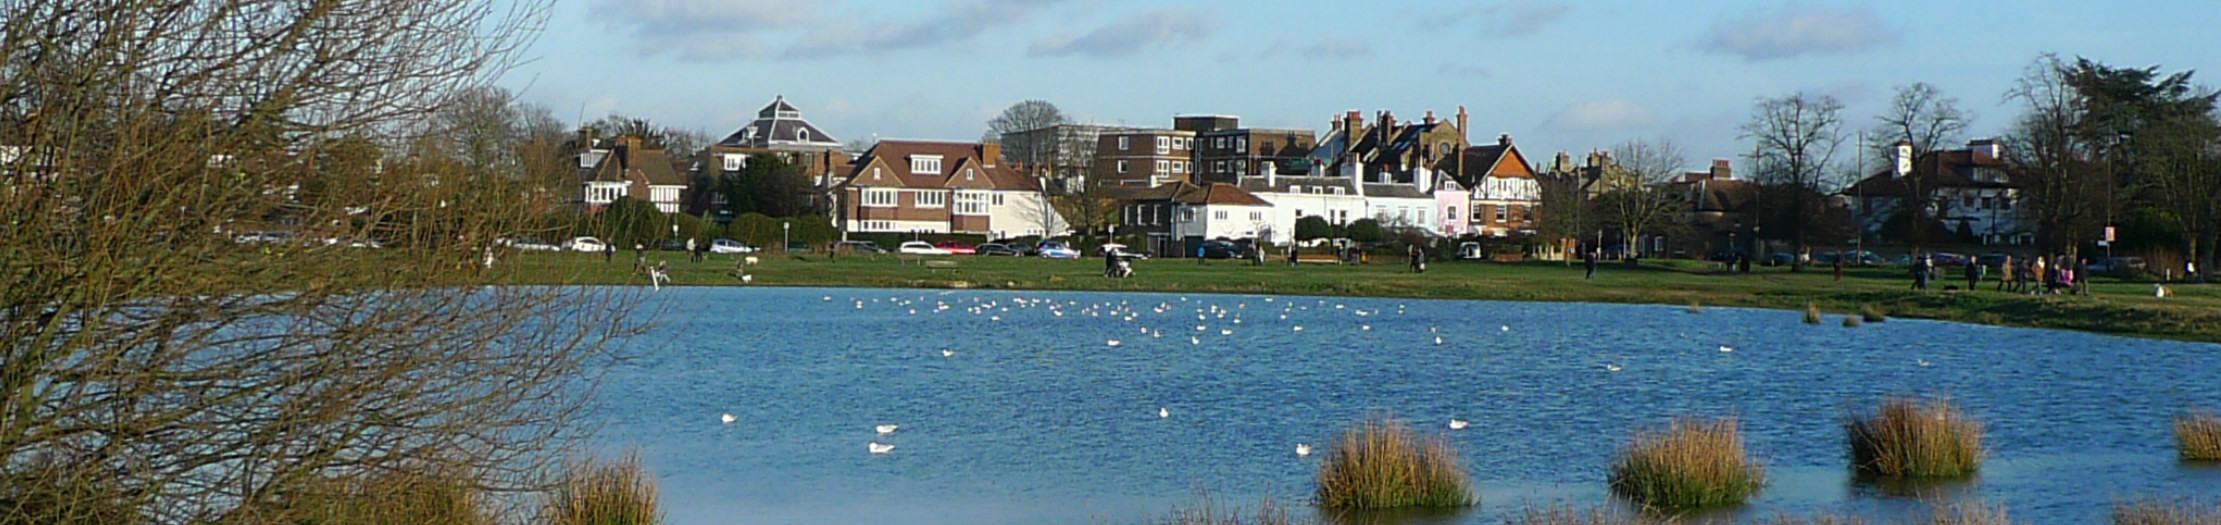 Rushmere pond, Wimbledon Common